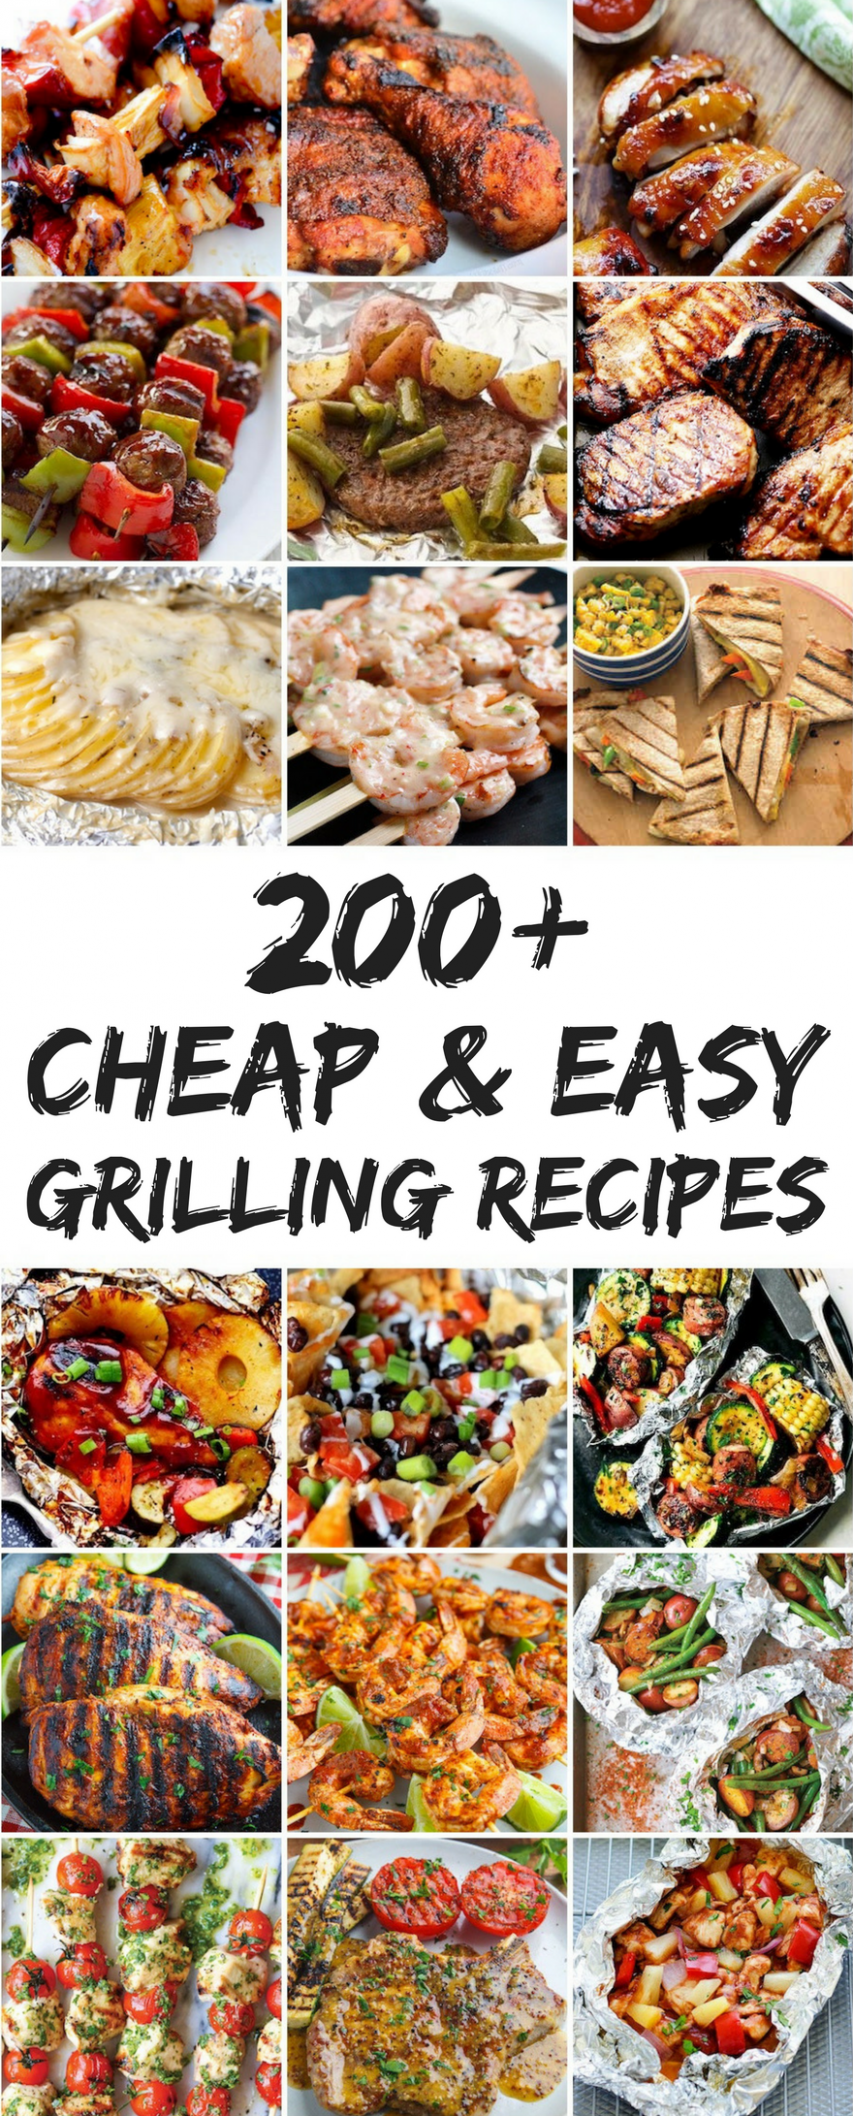 12 Cheap and Easy Grilling Recipes | Grilling recipes, Summer ..